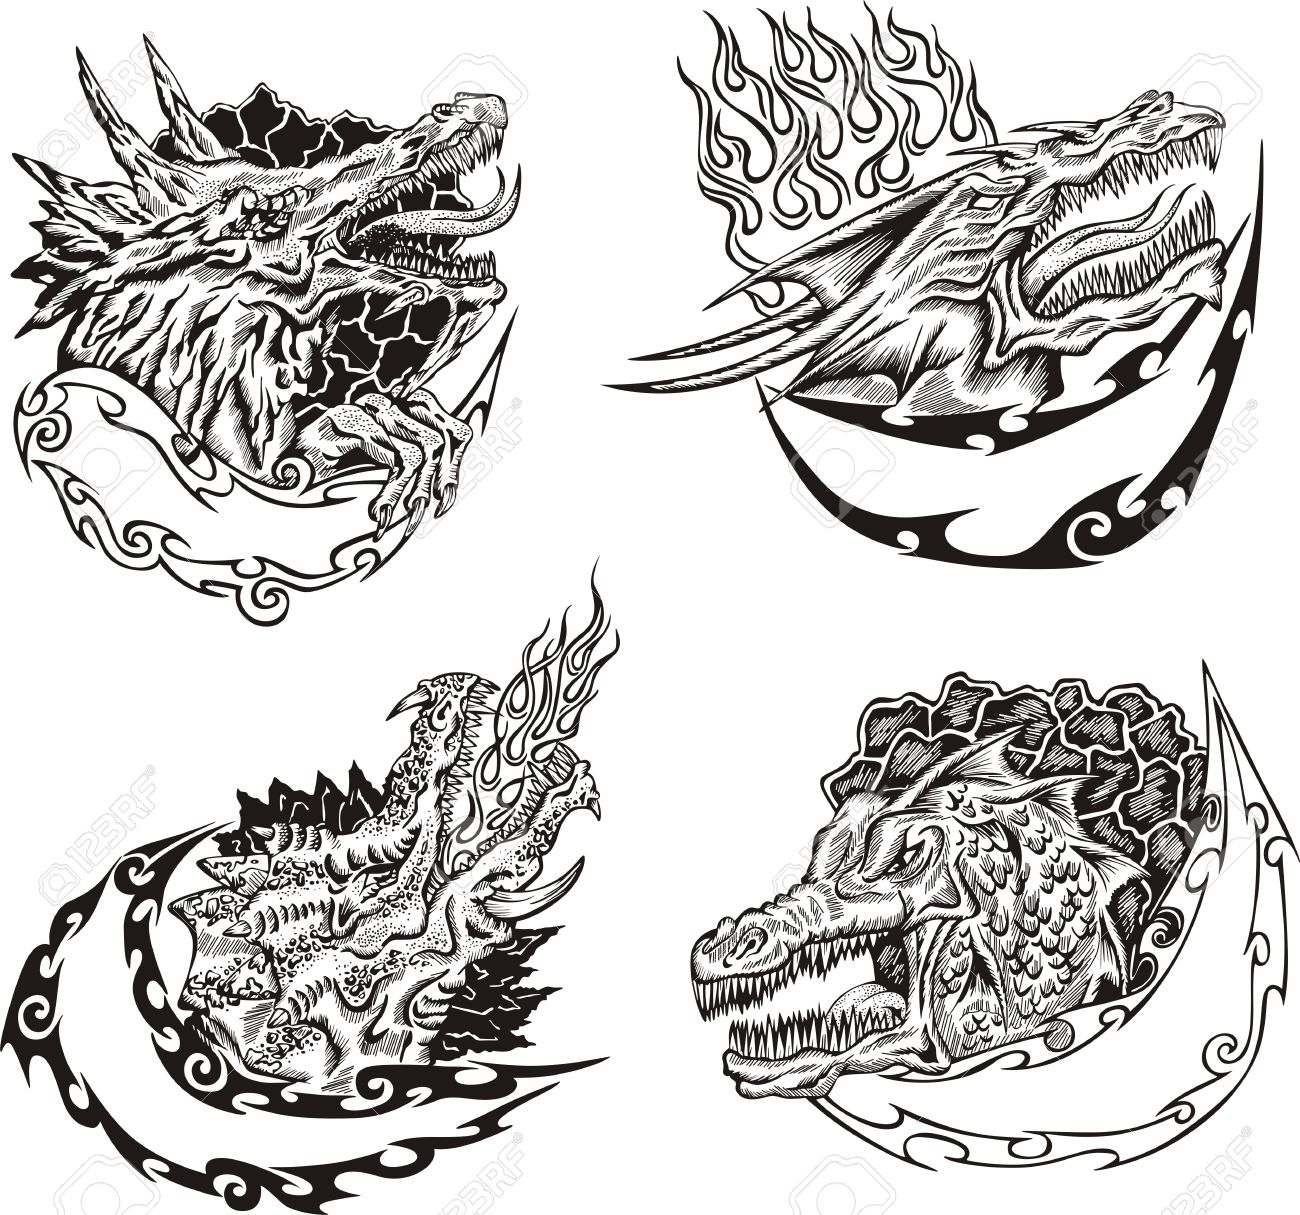 Decorative Templates With Dragon Heads For Mascot Design. Royalty ...